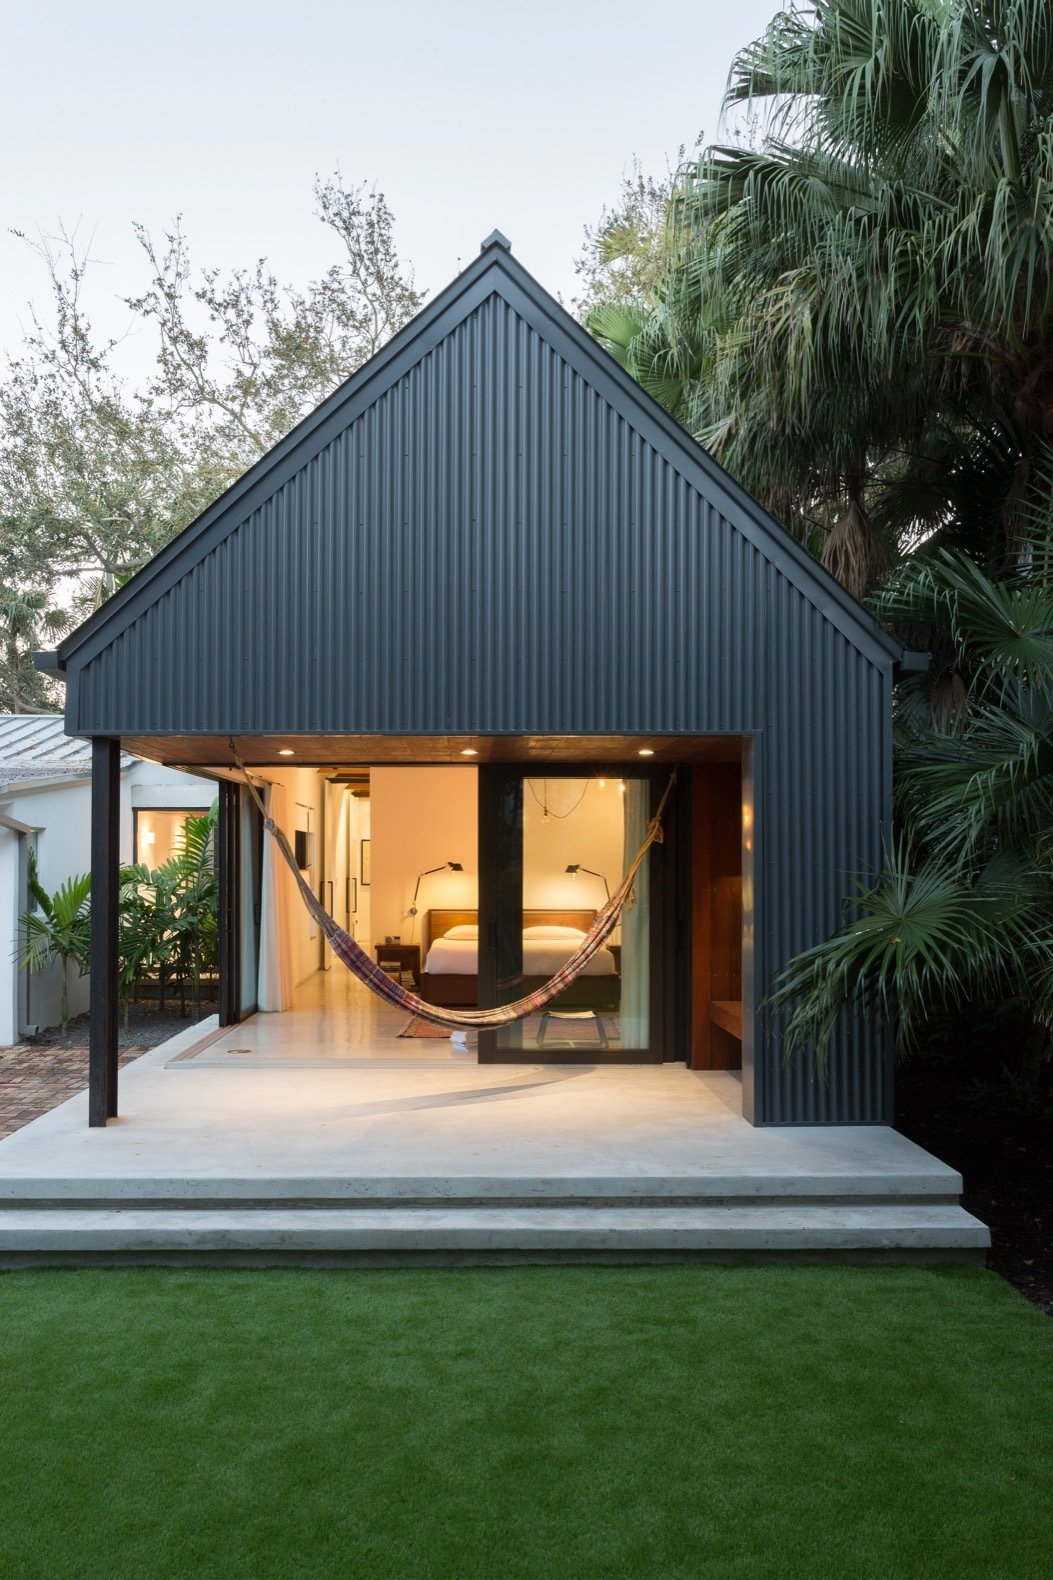 Outdoor, Grass, Trees, Back Yard, Concrete Patio, Porch, Deck, and Hanging Lighting A hammock hangs from the sheltered terrace outside the master bedroom.  Best Photos from A Minimalist Bungalow in Miami Welcomes a Sleek New Addition